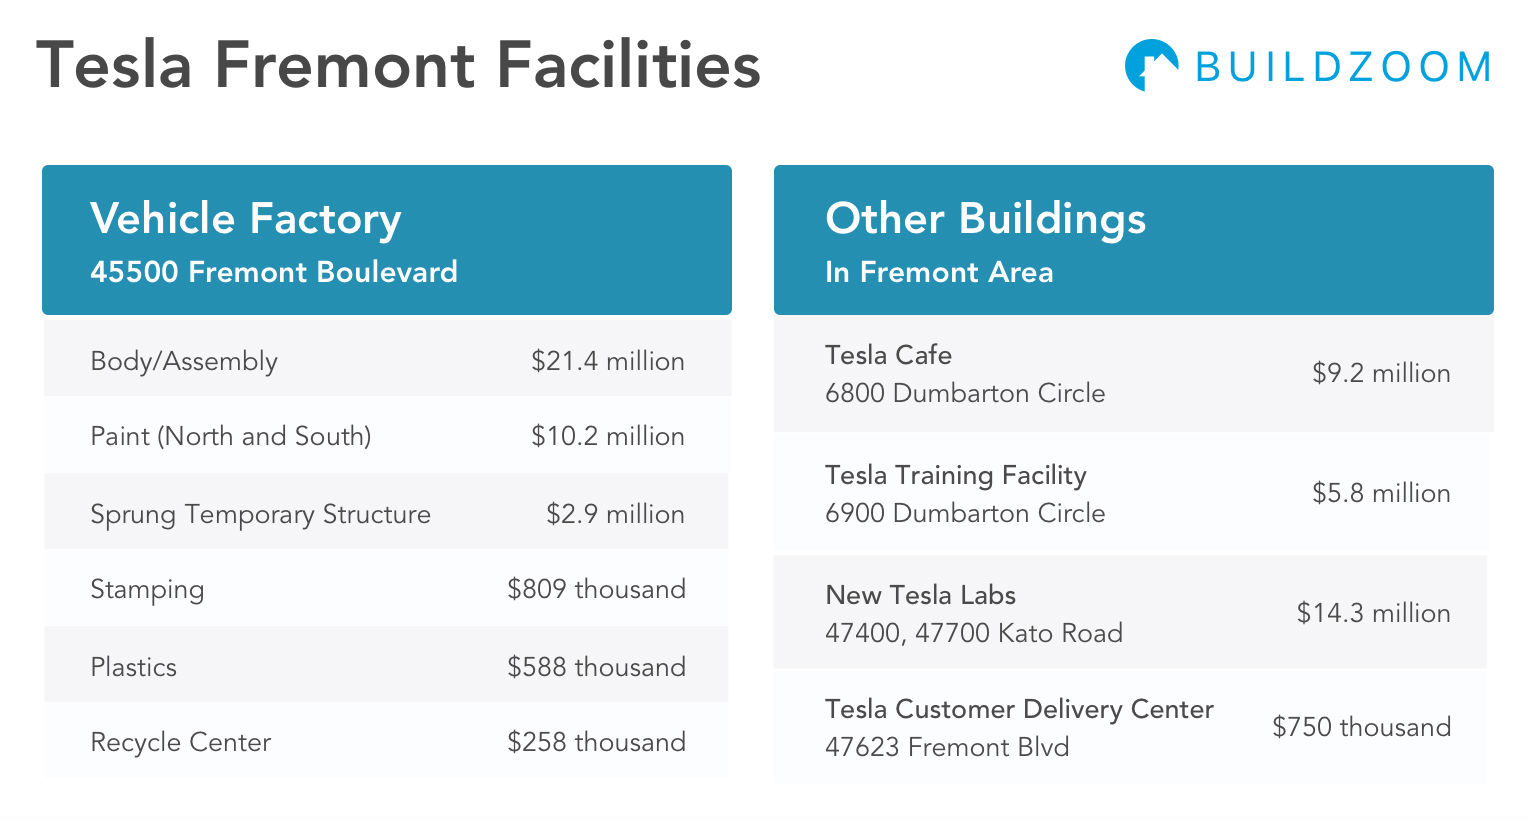 Tesla-Fremont-Facilities-Cost